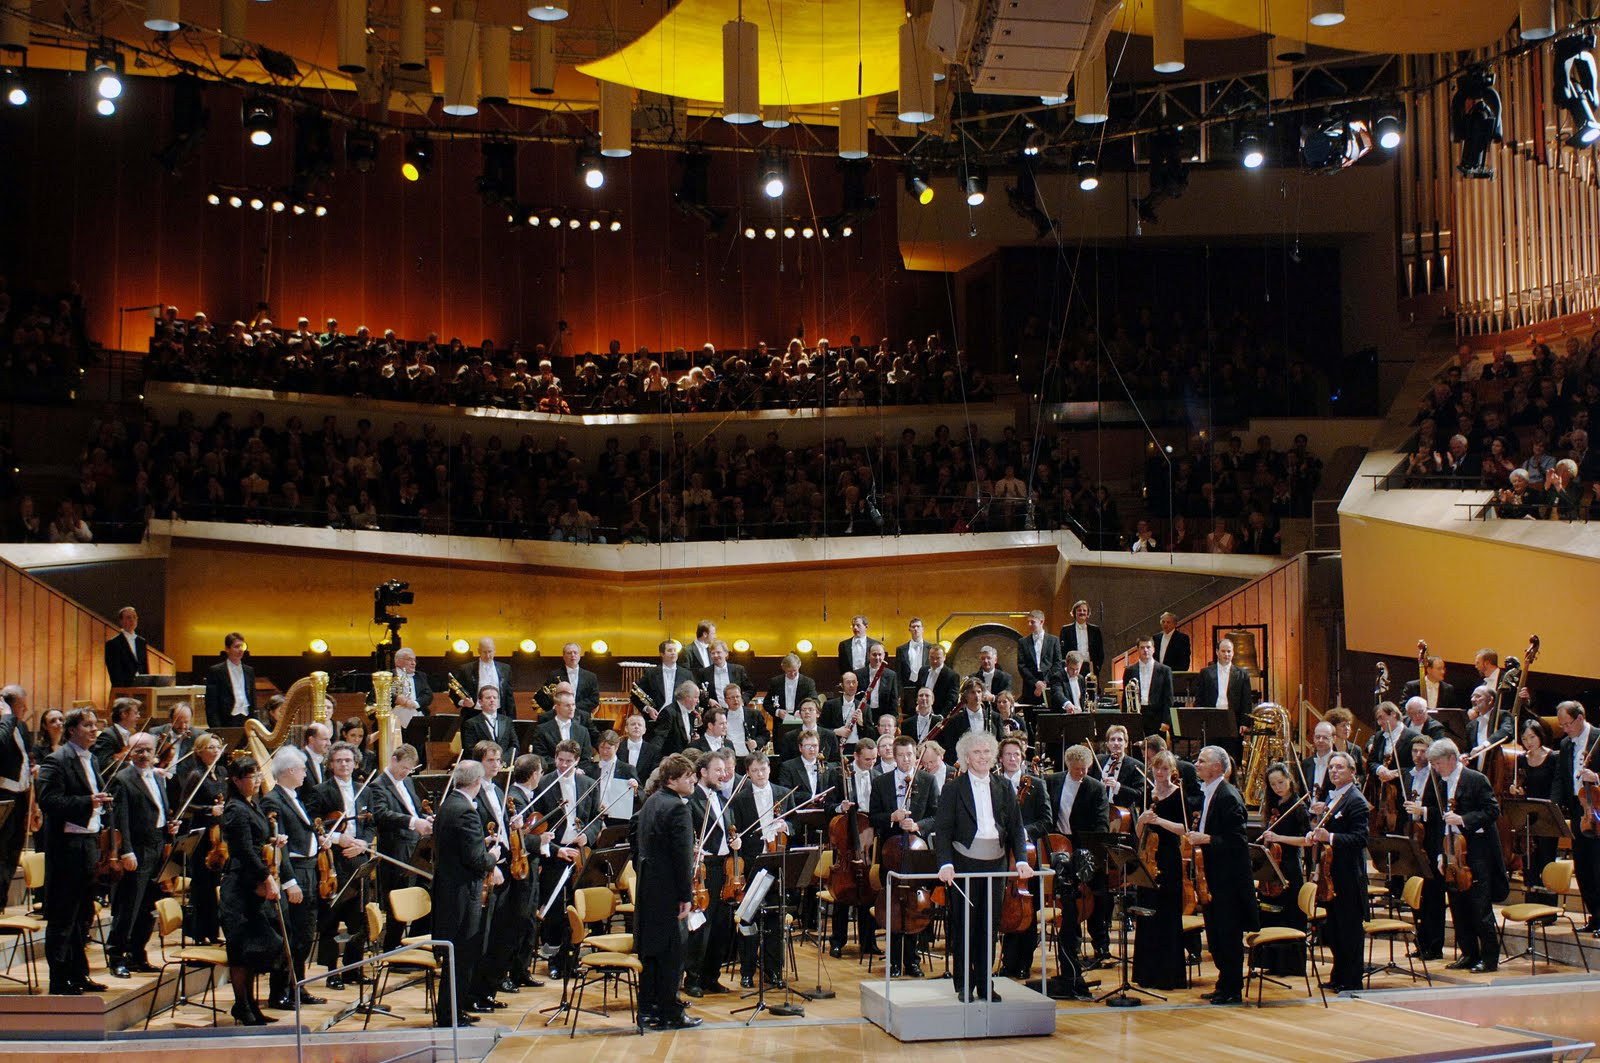 Berlin Philharmonic Orchestra and the Philharmonie